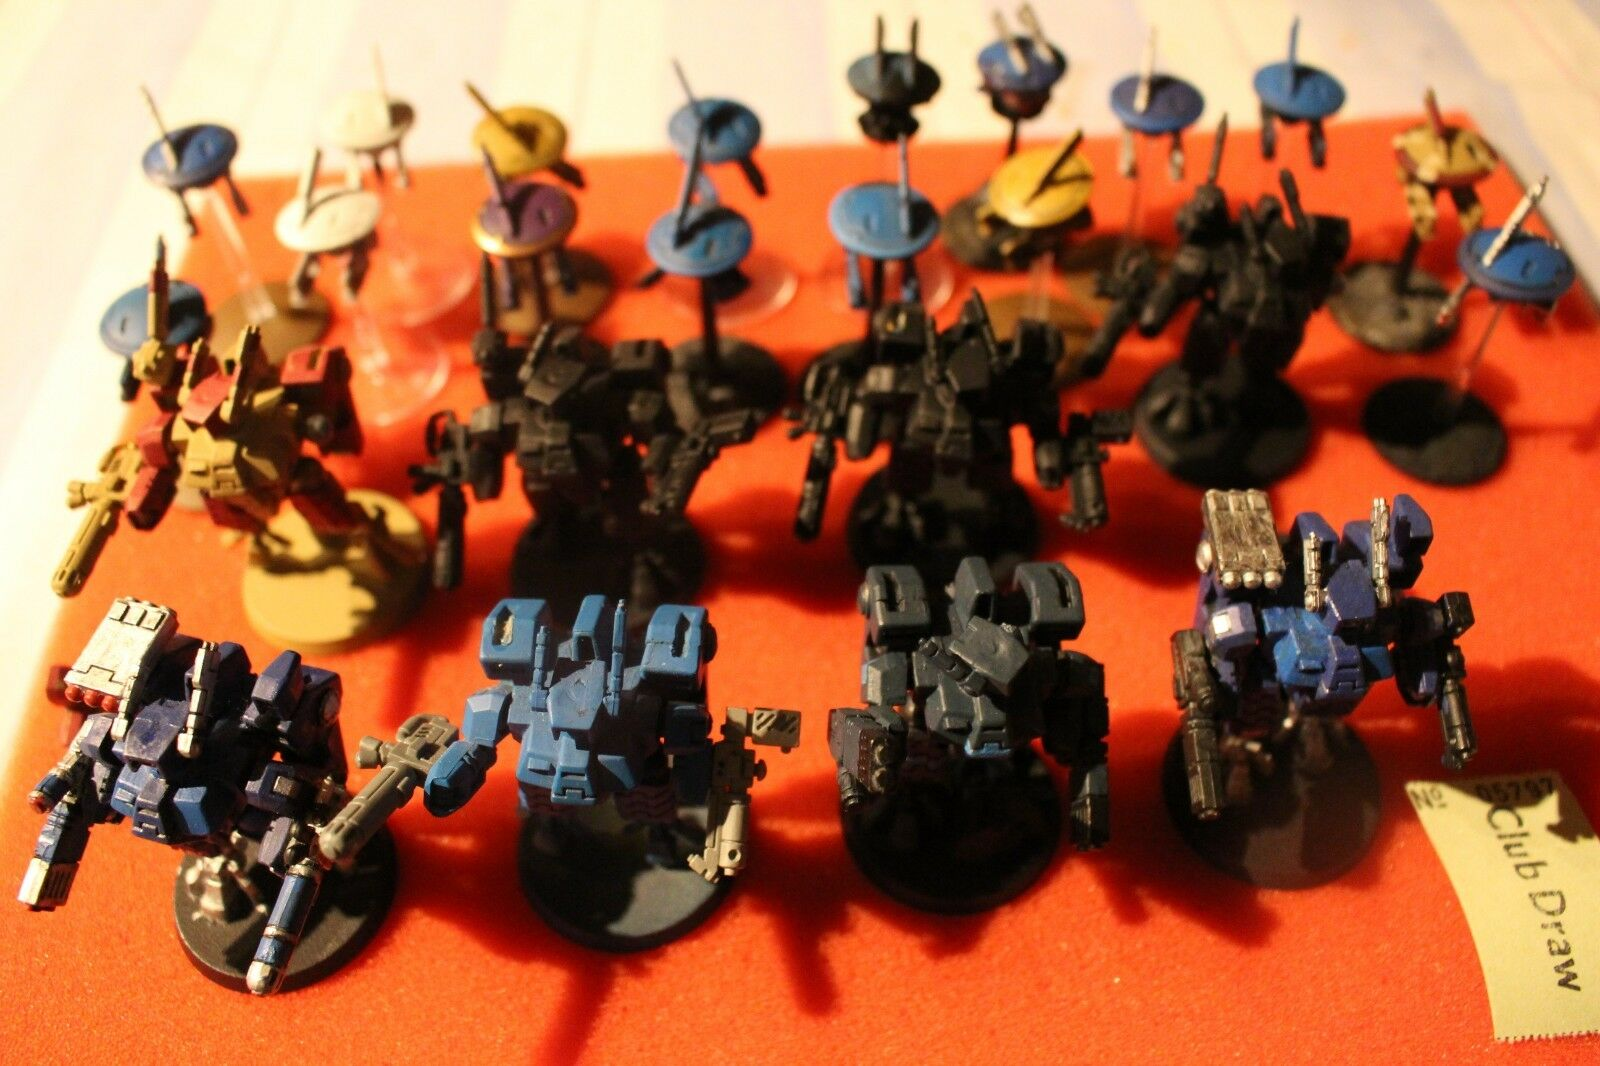 Games Workshop Warhammer 40k Tau Empire XV8 Crisis Battlesuits x8 Painted Army